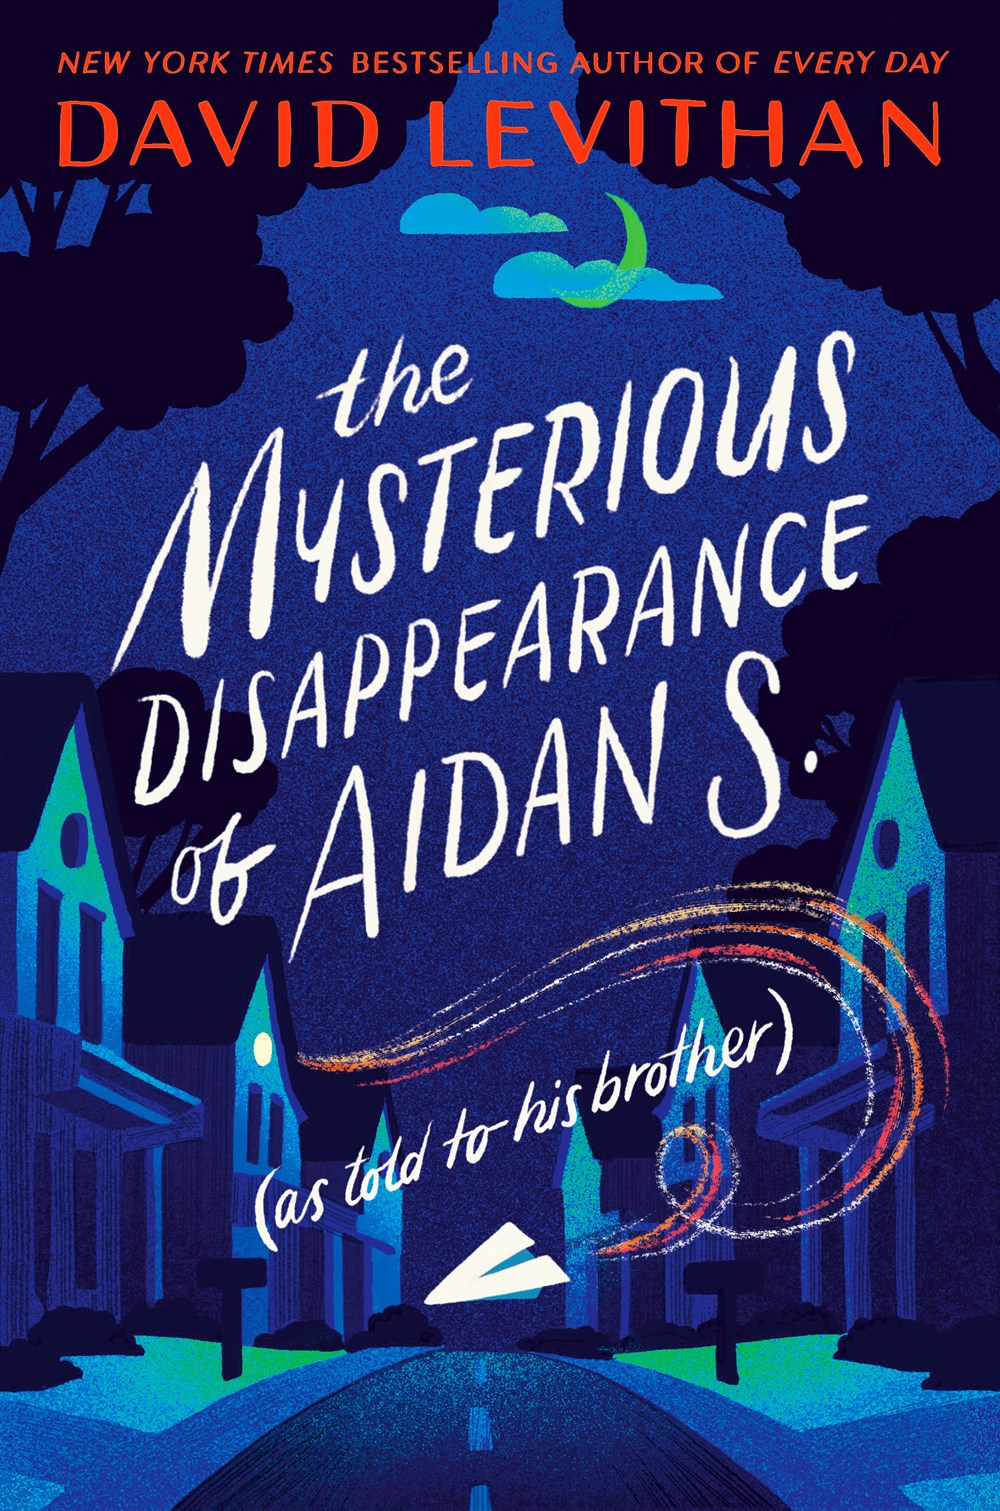 the mysterious disappearance of Aiden S.